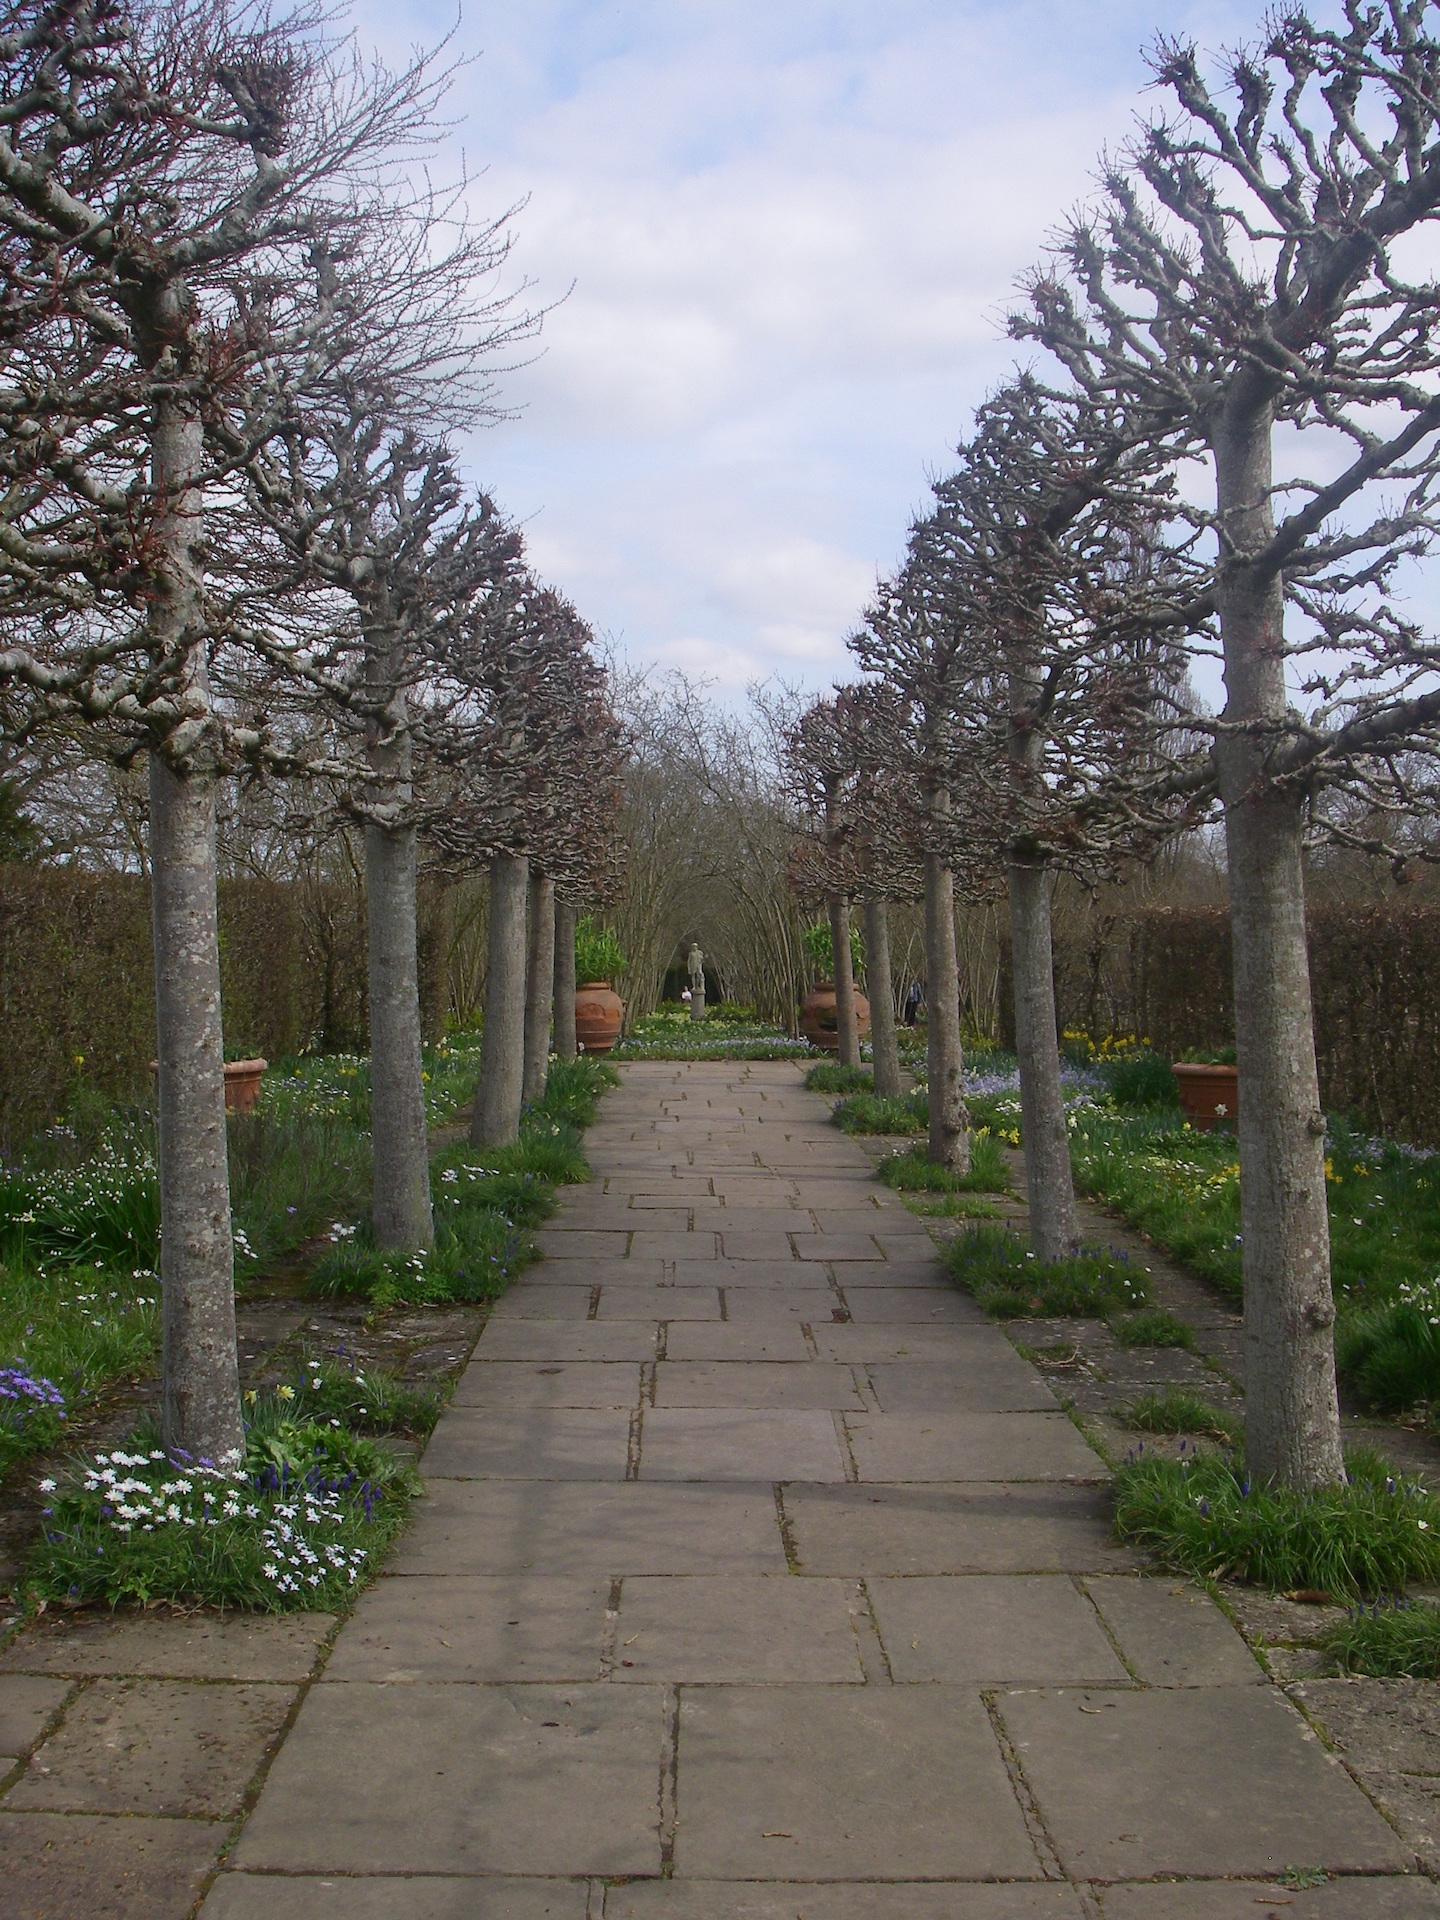 Lime Walk and Paving with pleached pruning in early Spring. Classic English Garden Design.